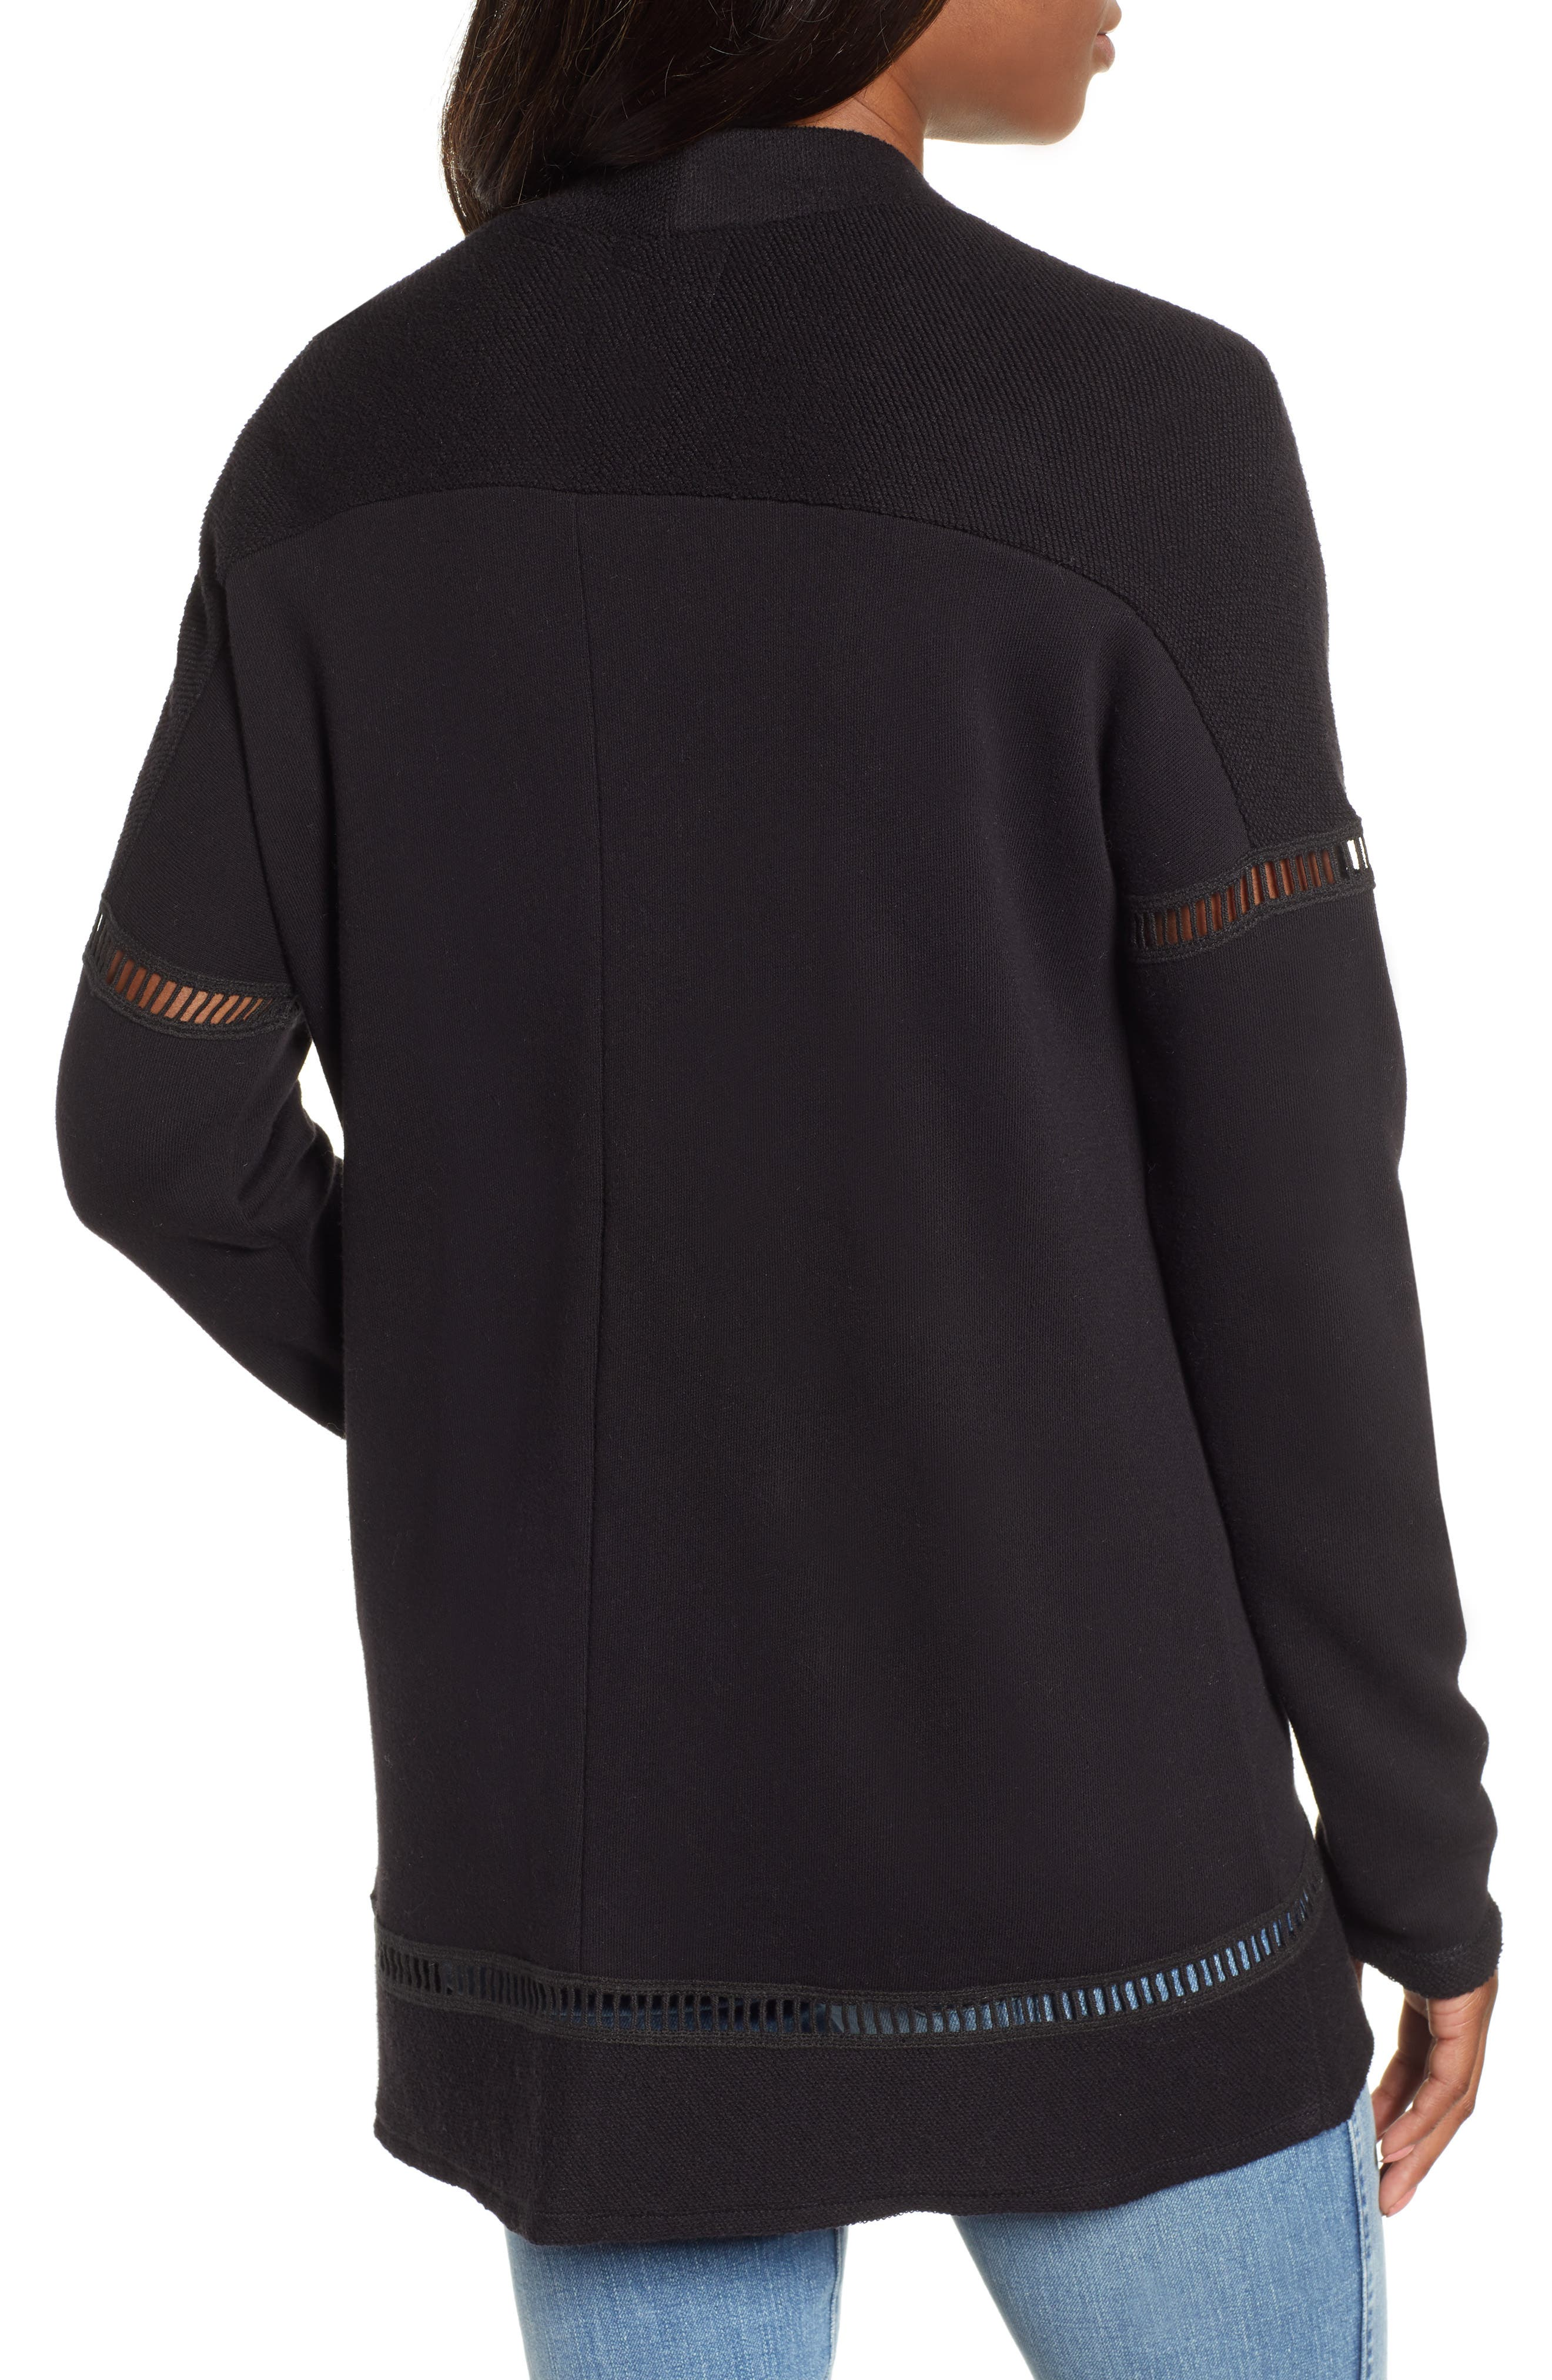 French Terry Open Front Cotton Cardigan,                             Alternate thumbnail 2, color,                             BLACK